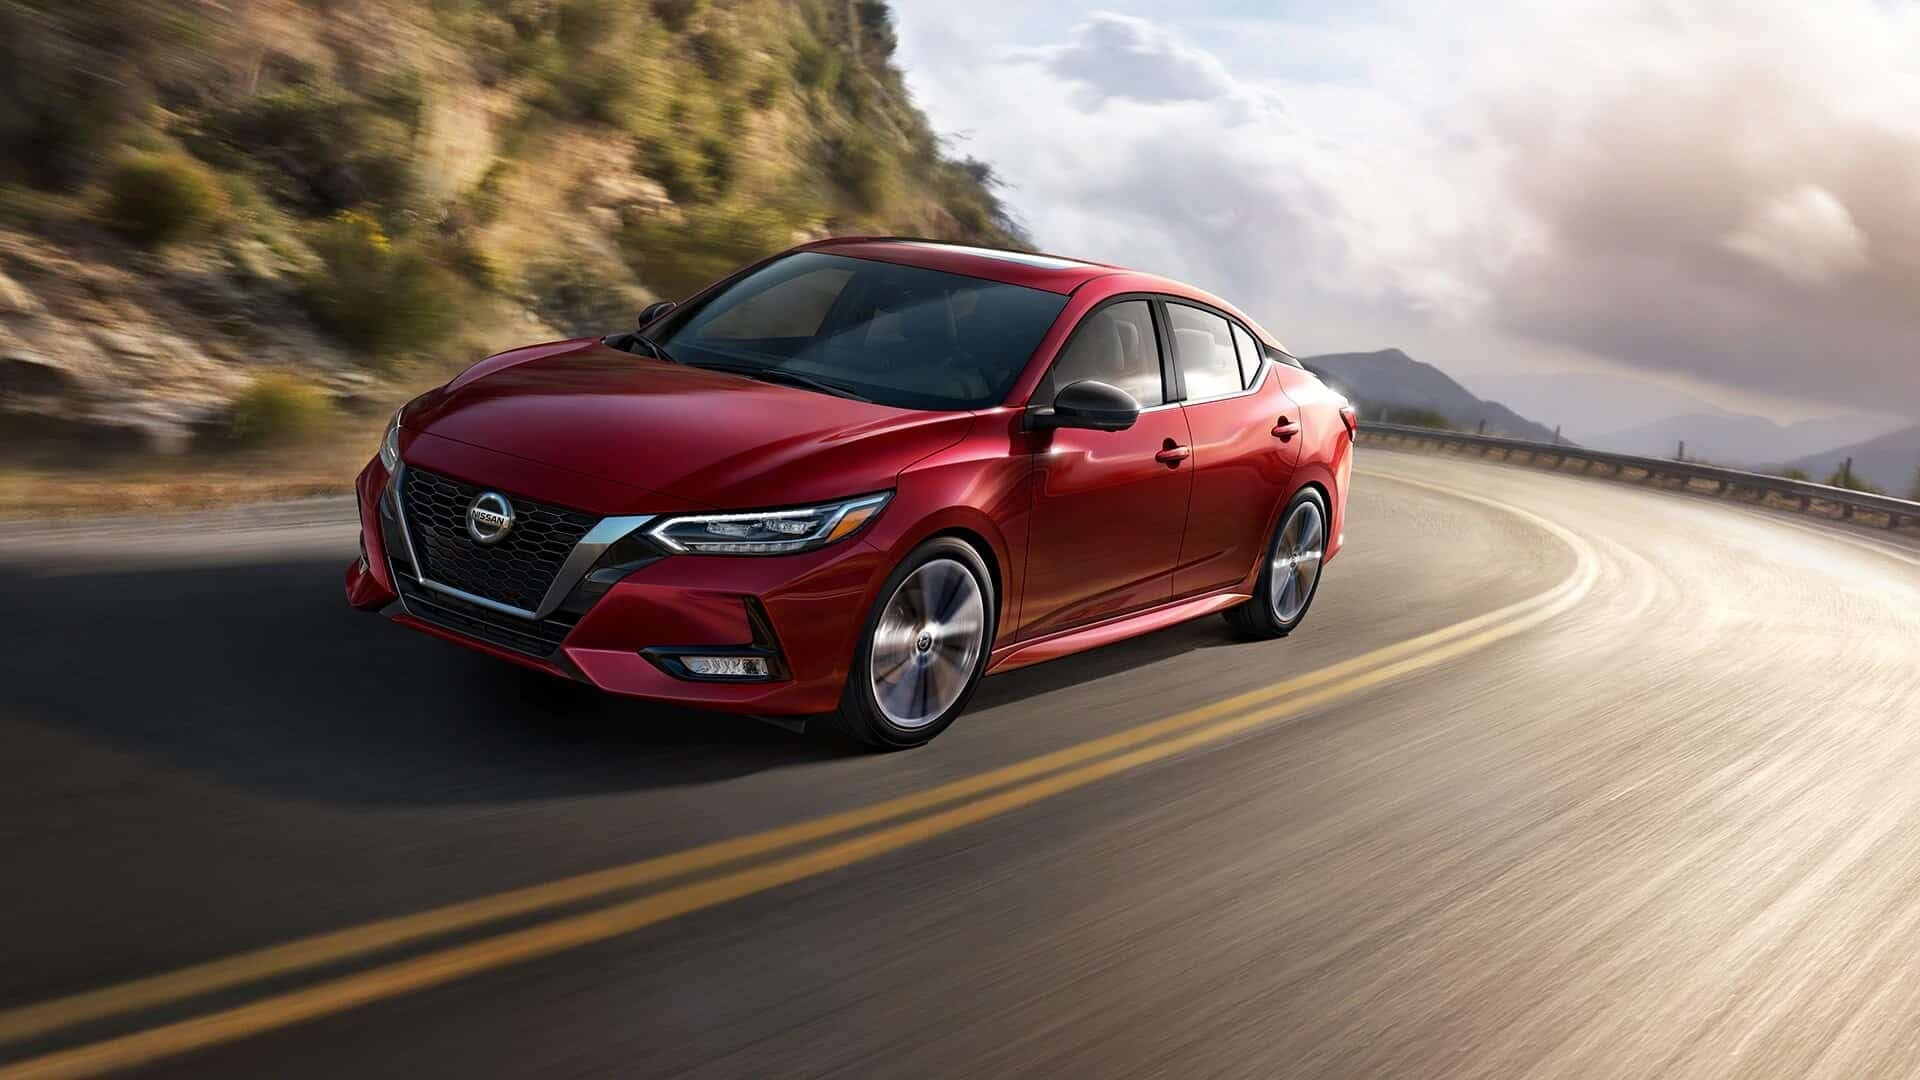 Go Online to Learn More About the 2020 Nissan Sentra in San Antonio